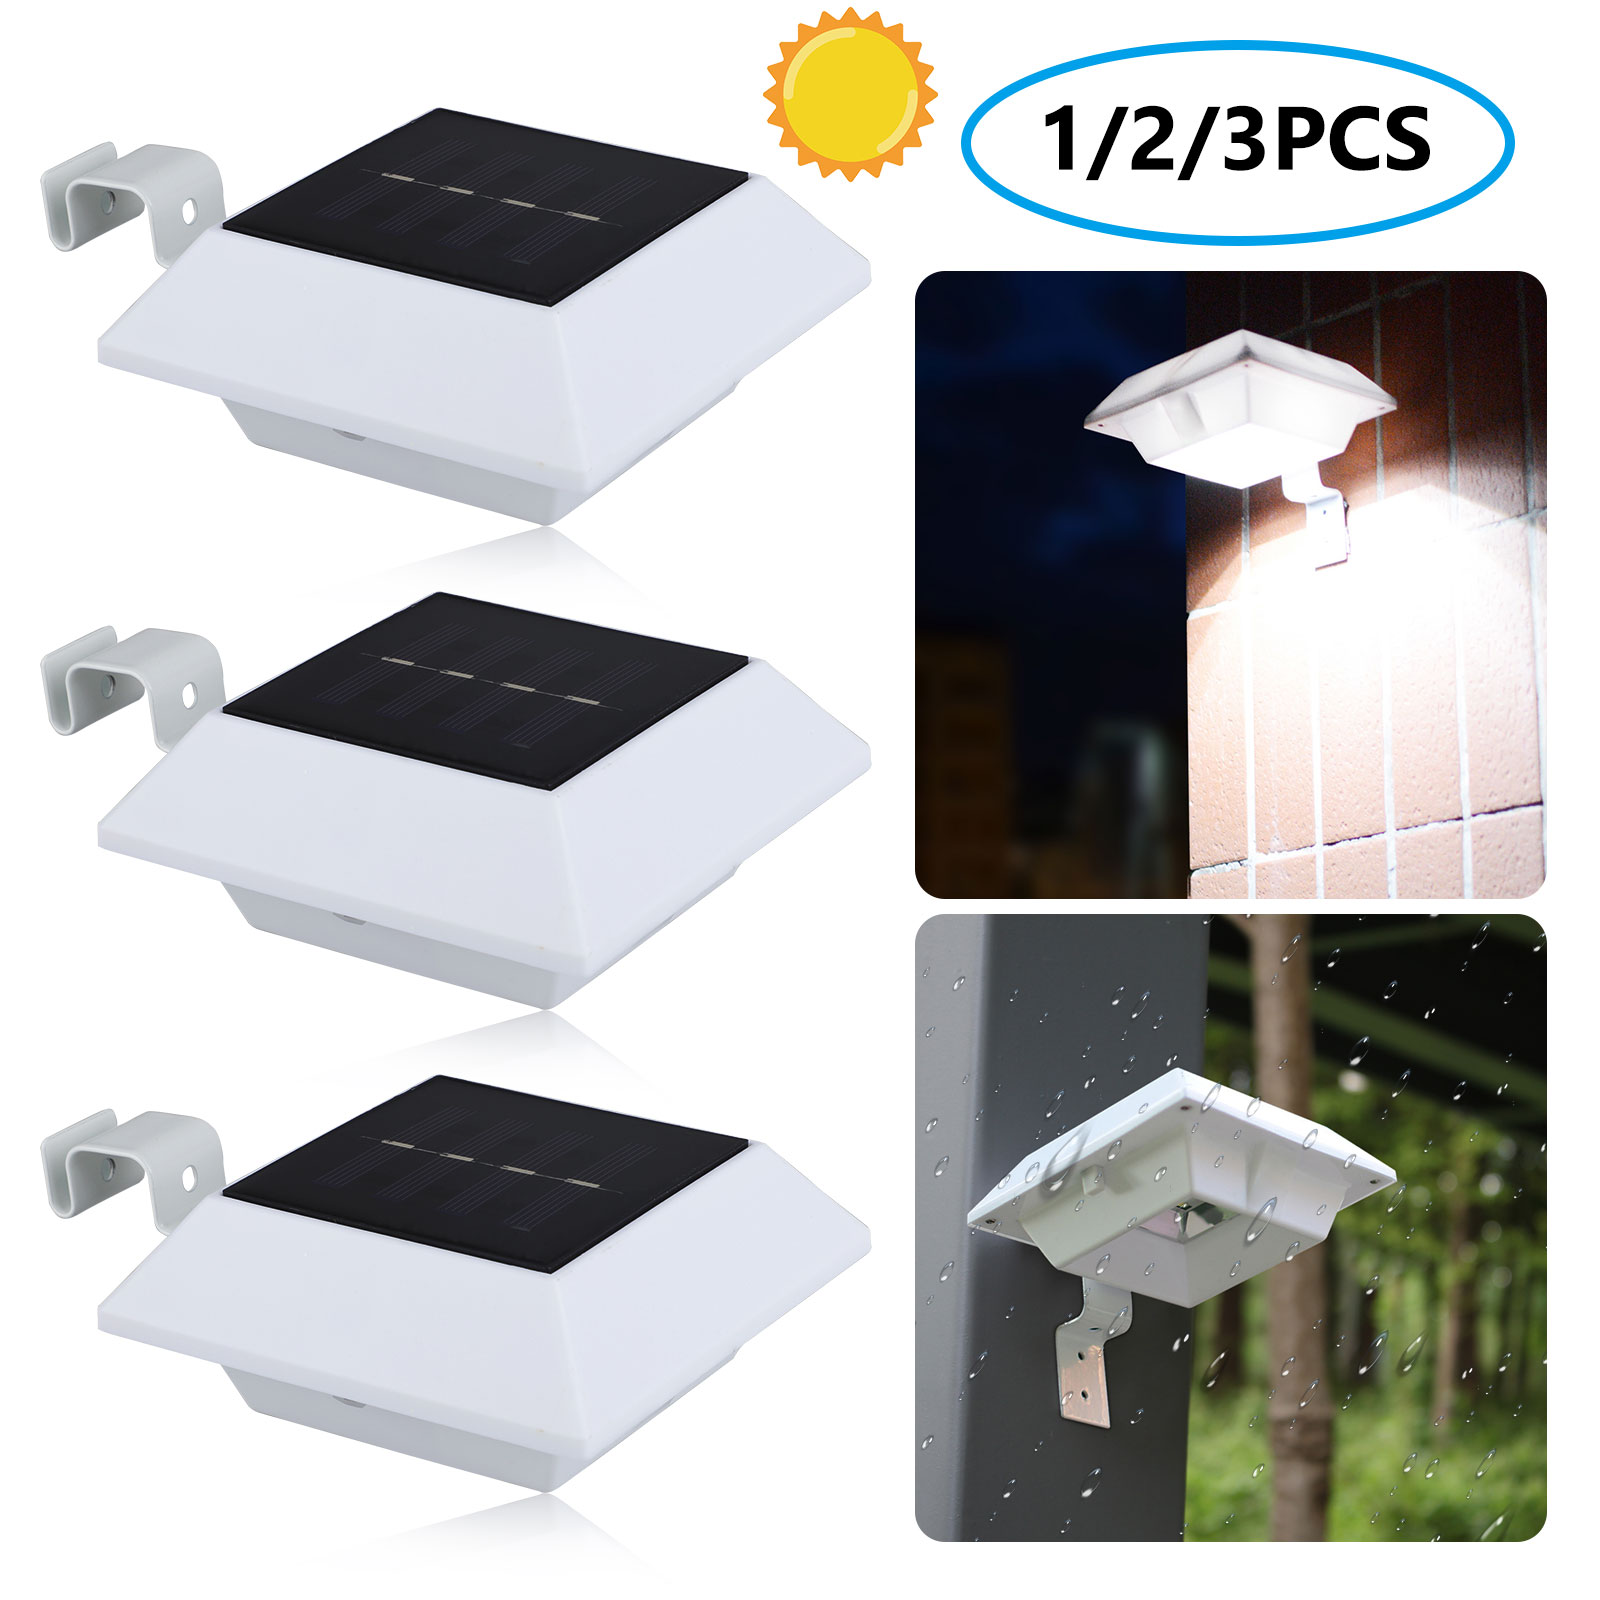 5 Color Brand new Solar powered LED Lights for Garden Driveway Decking Anywhere